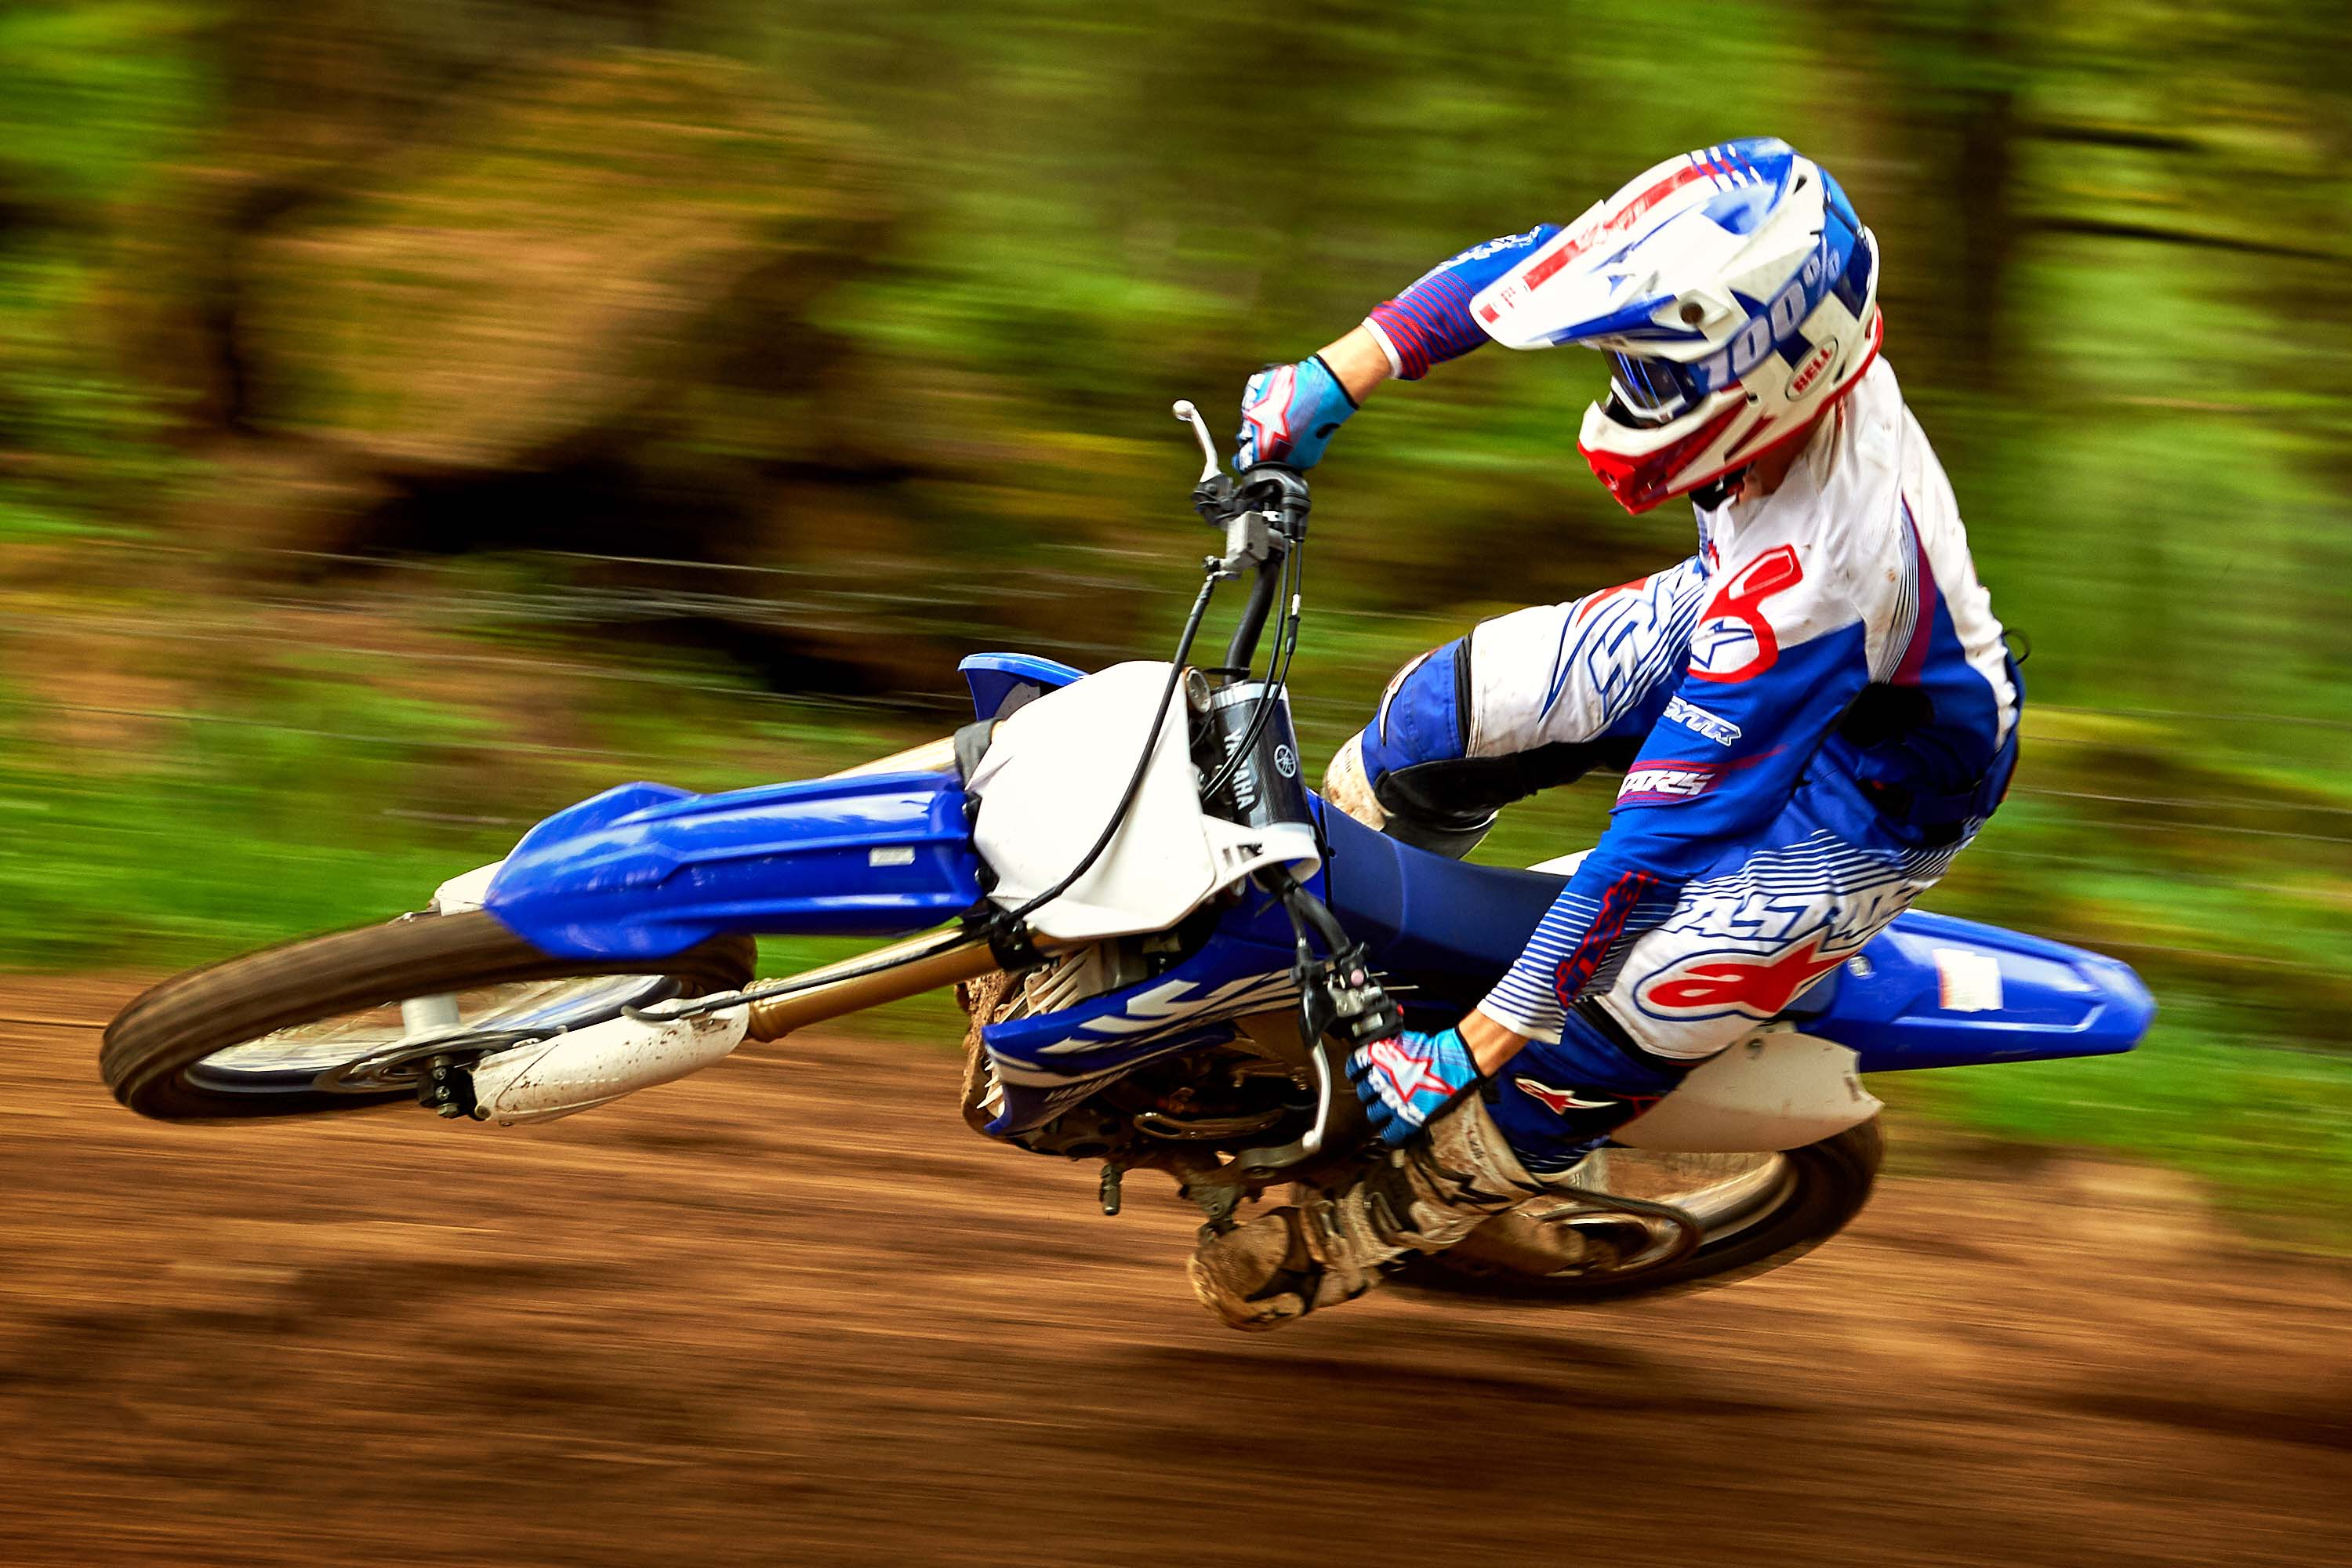 2018 yamaha yz450f debuts with tuner app asphalt rubber for Yamaha yz 450f